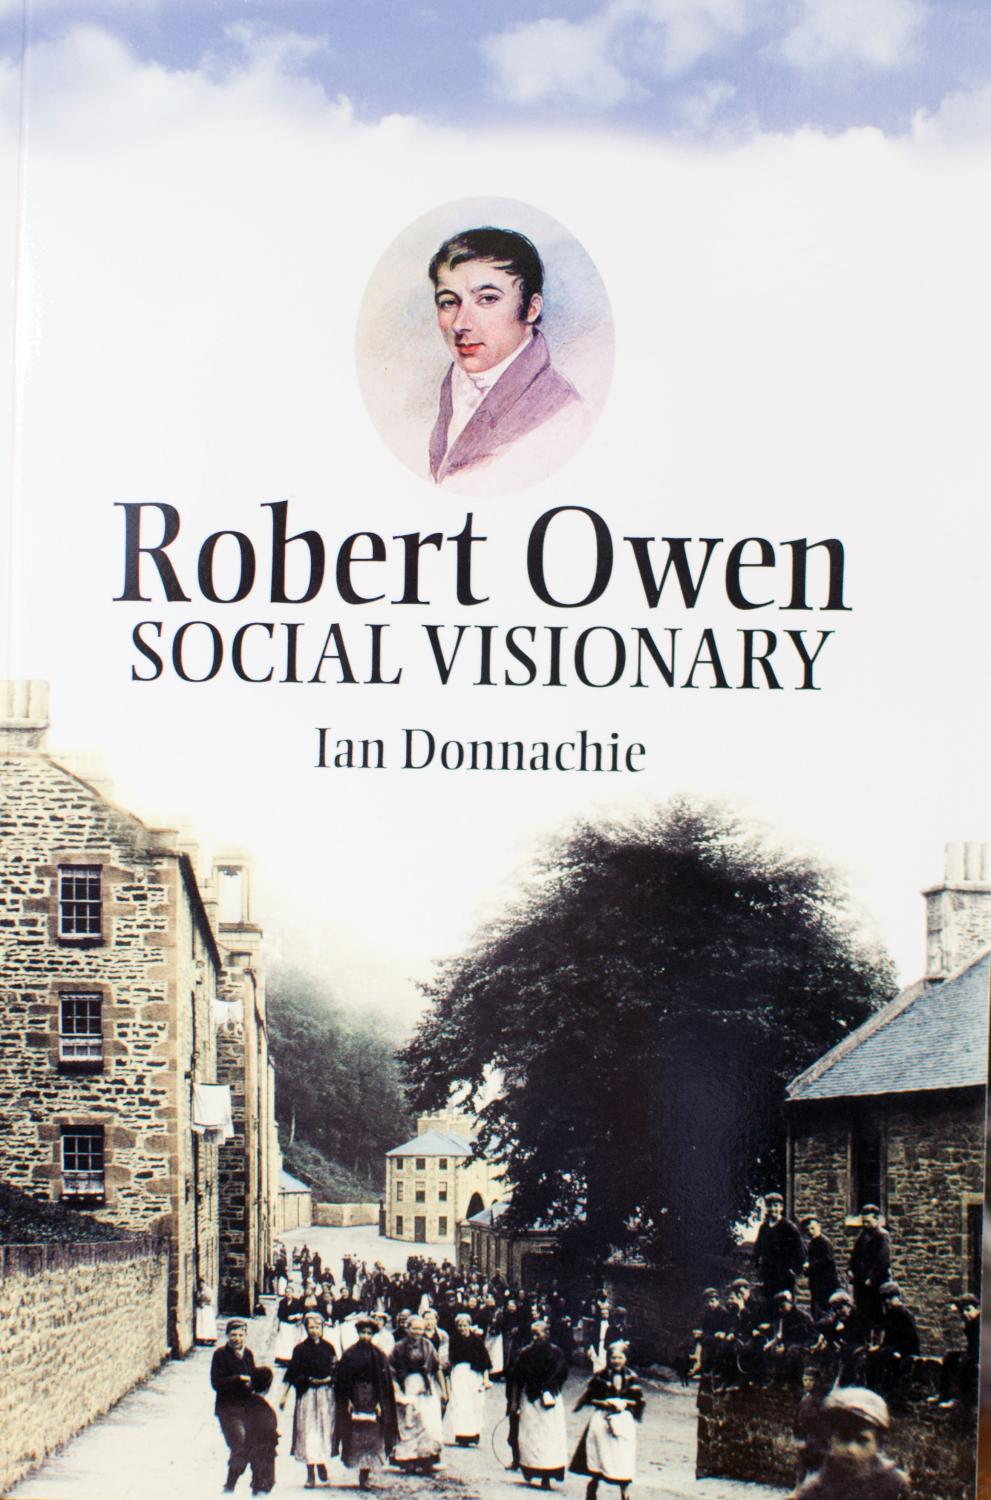 Robert Owen Social Visionary